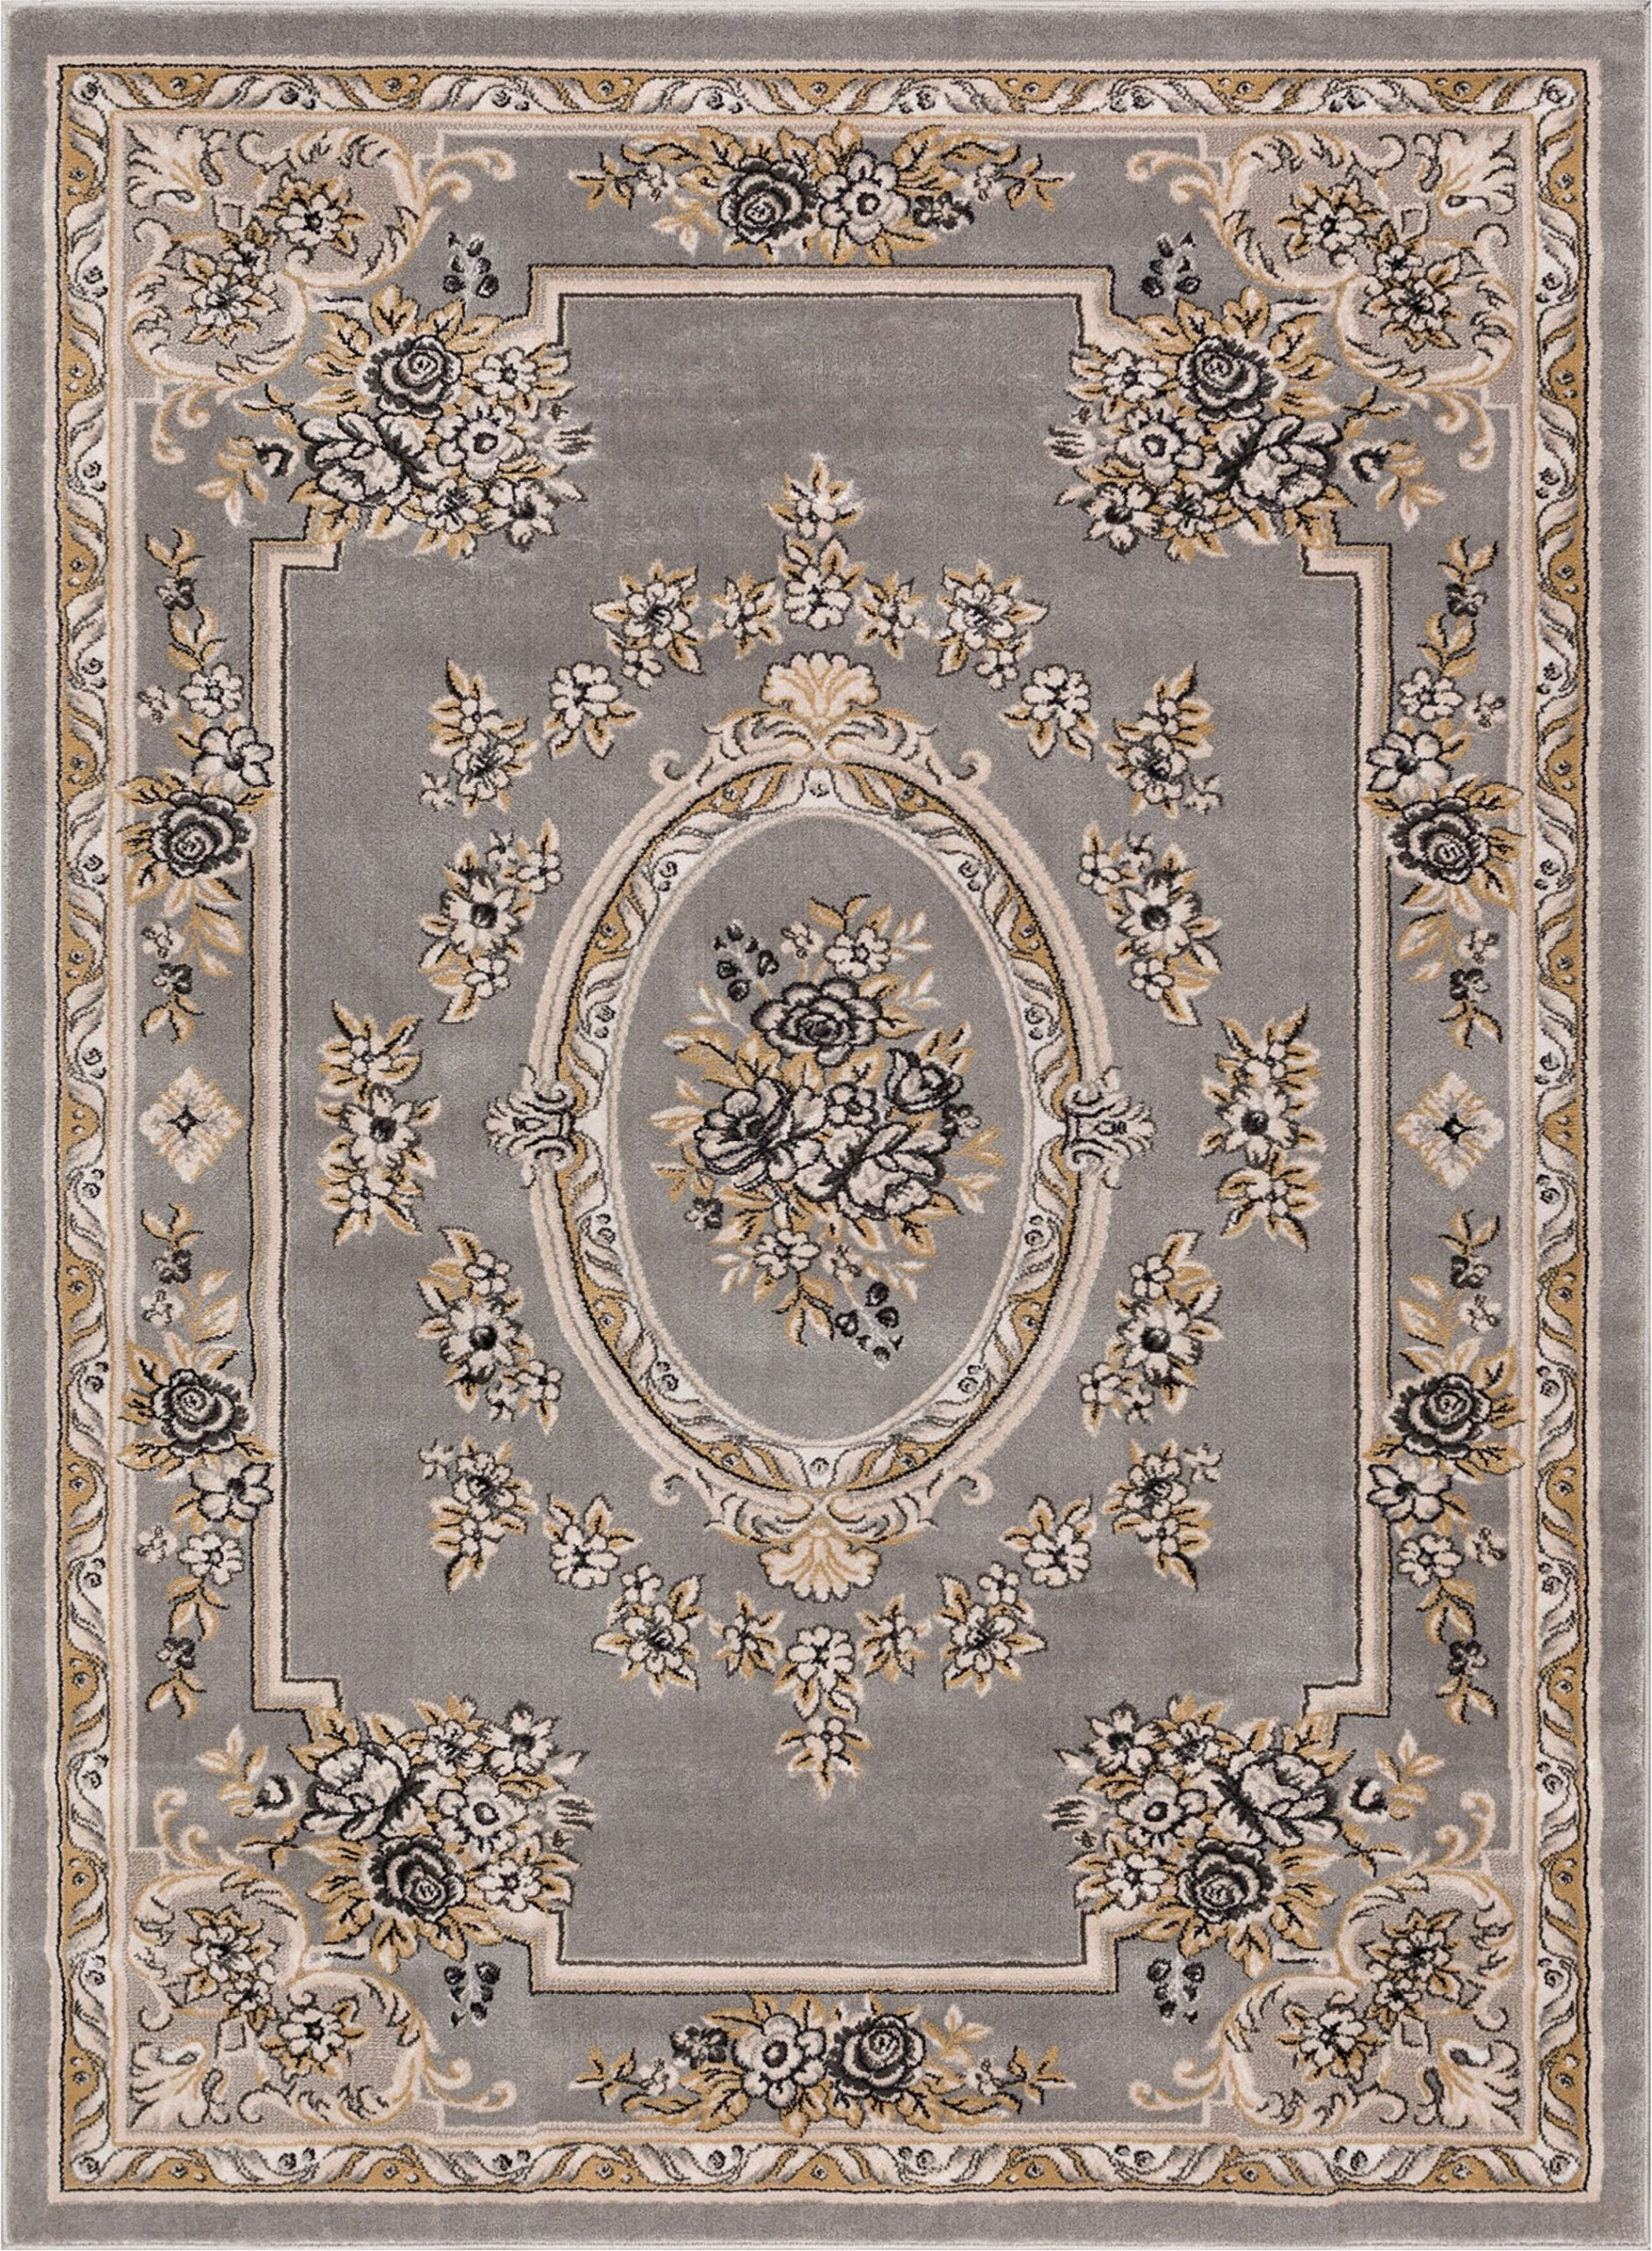 Well Woven 36385 Timeless Le Petit Palais